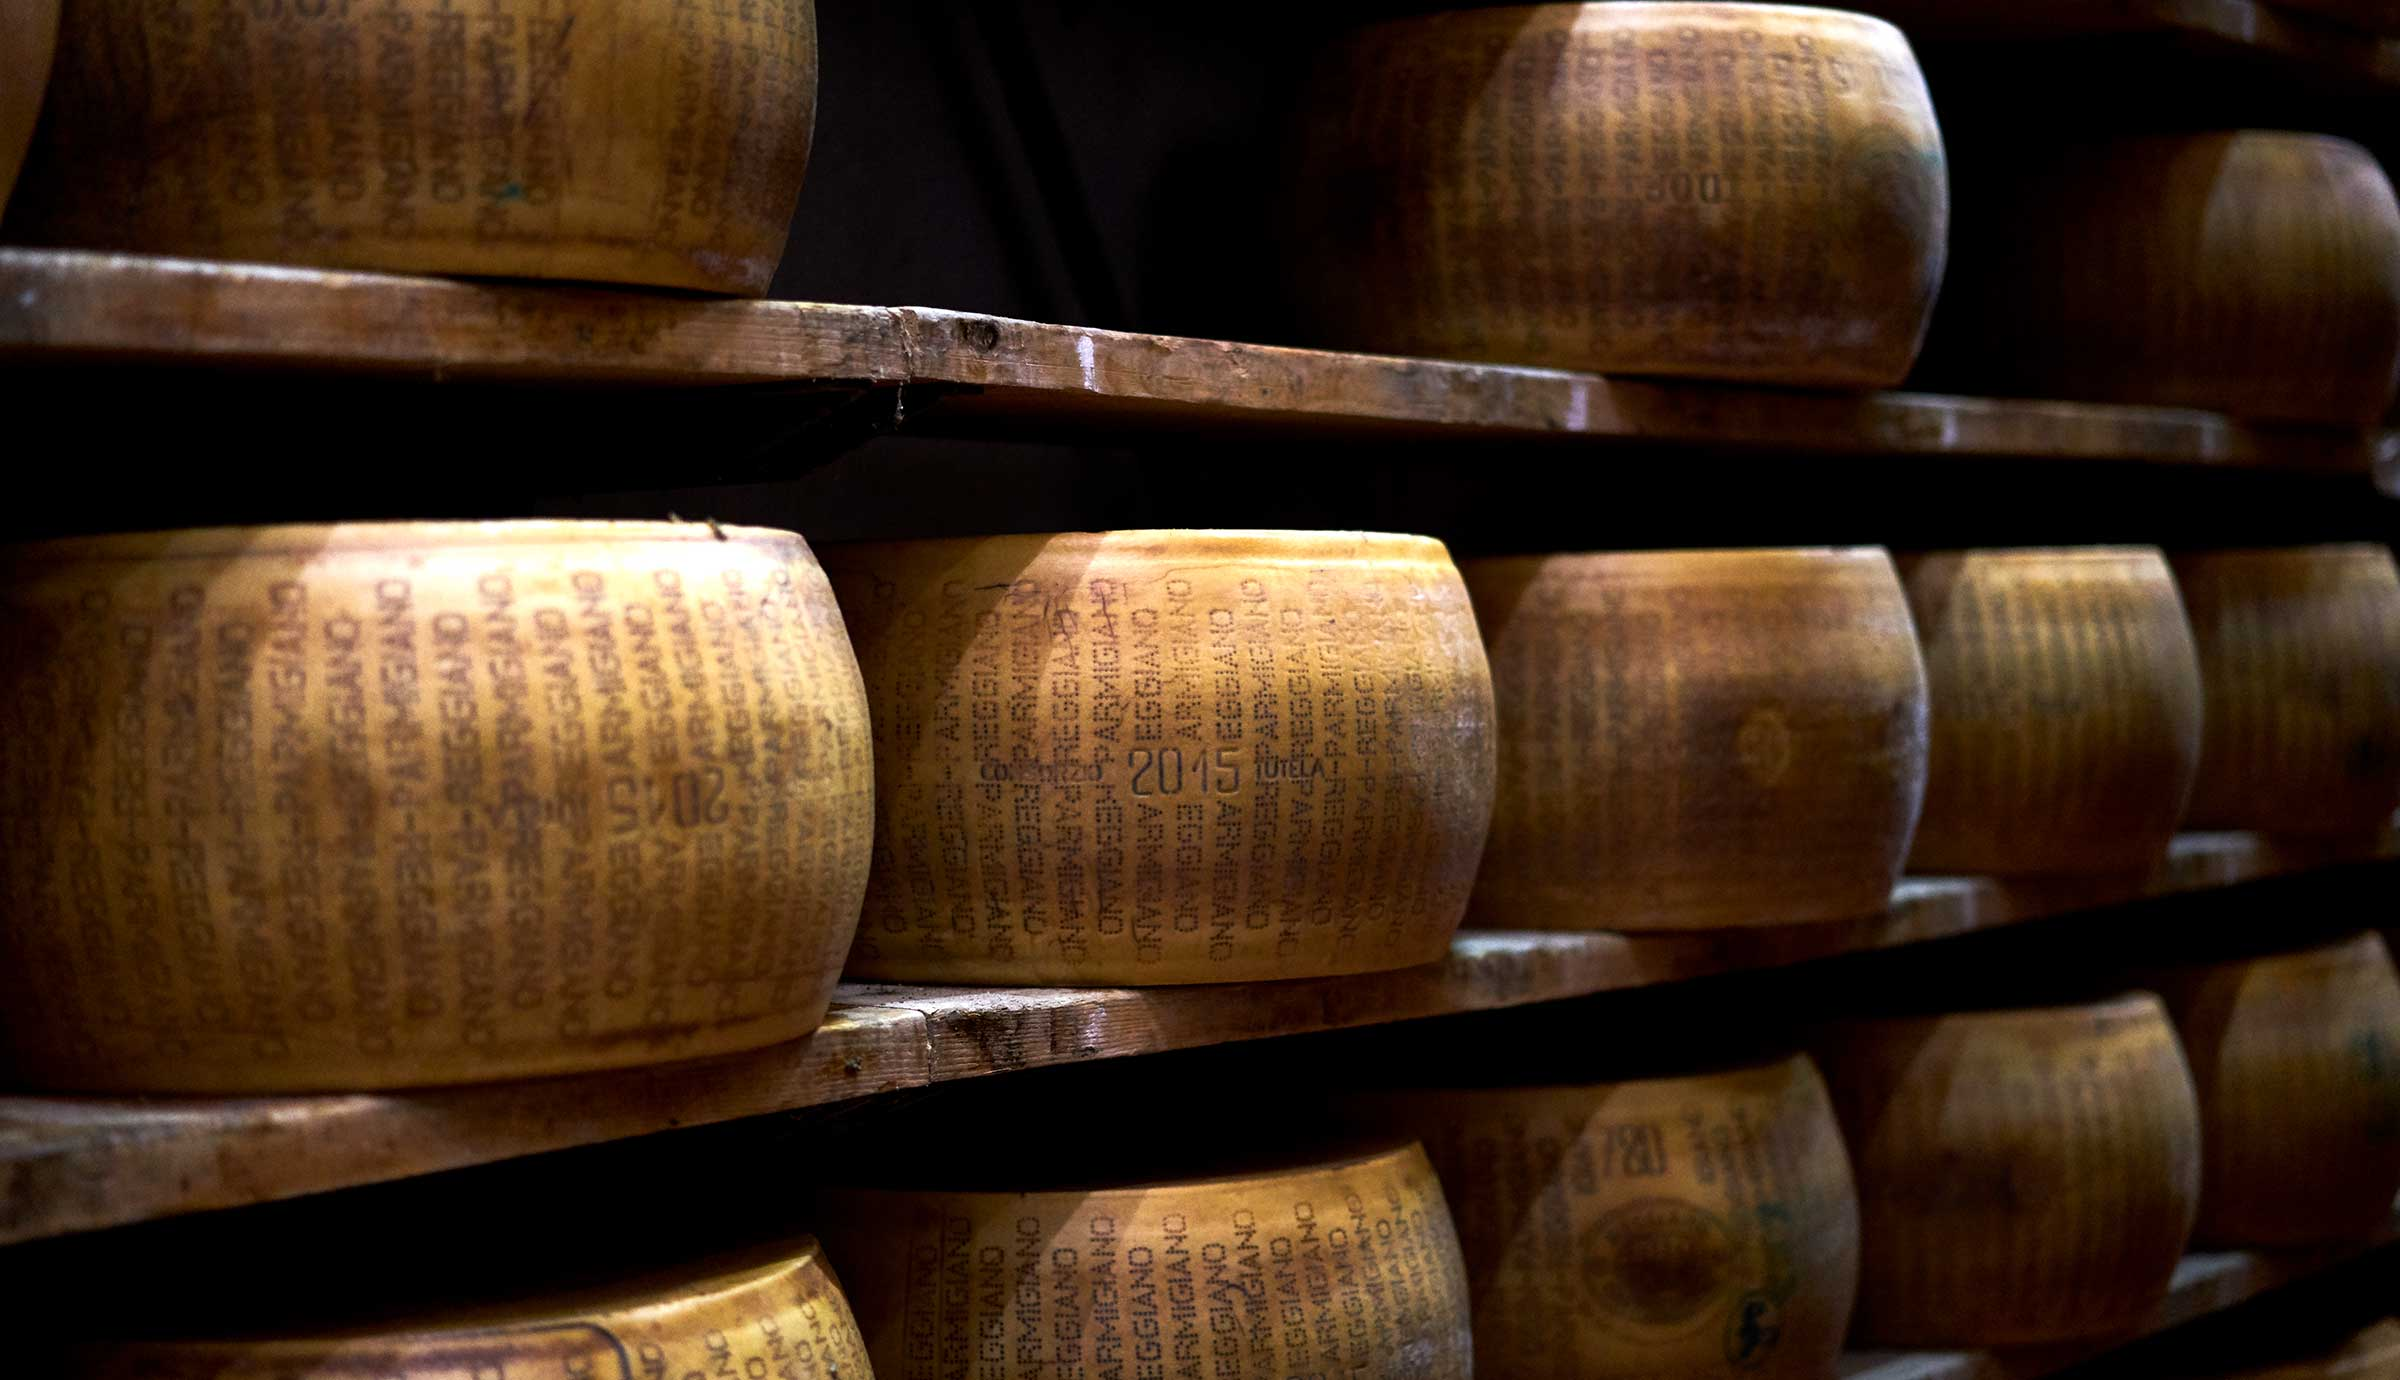 Wheels of Parmigiano Reggiano cheese stacked on shelves